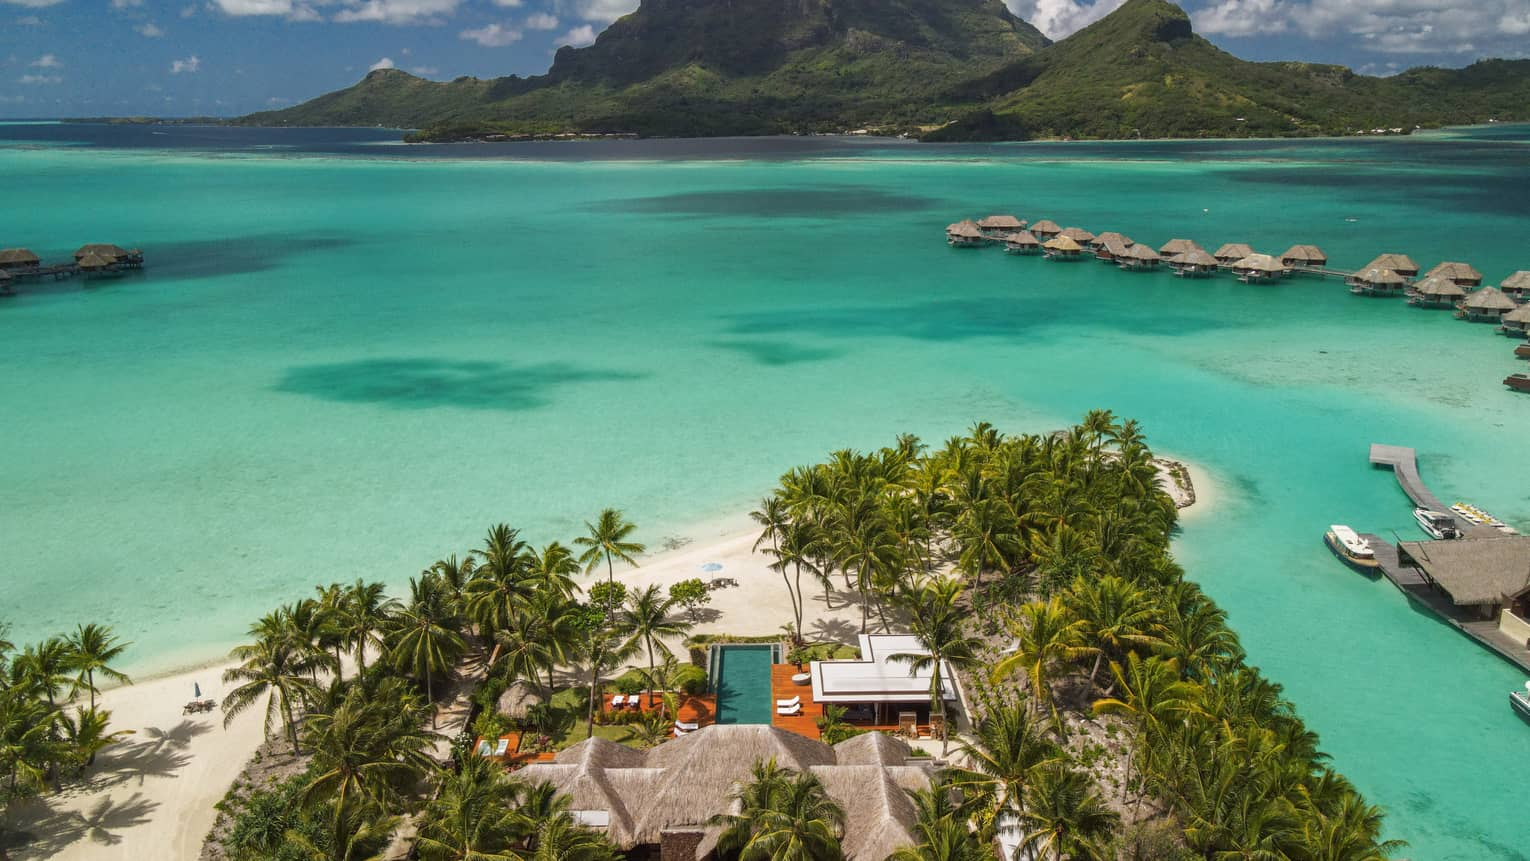 Aerial view of Bora Bora villa on edge of turquoise lagoon, looking out to overwater bungalows and mountains